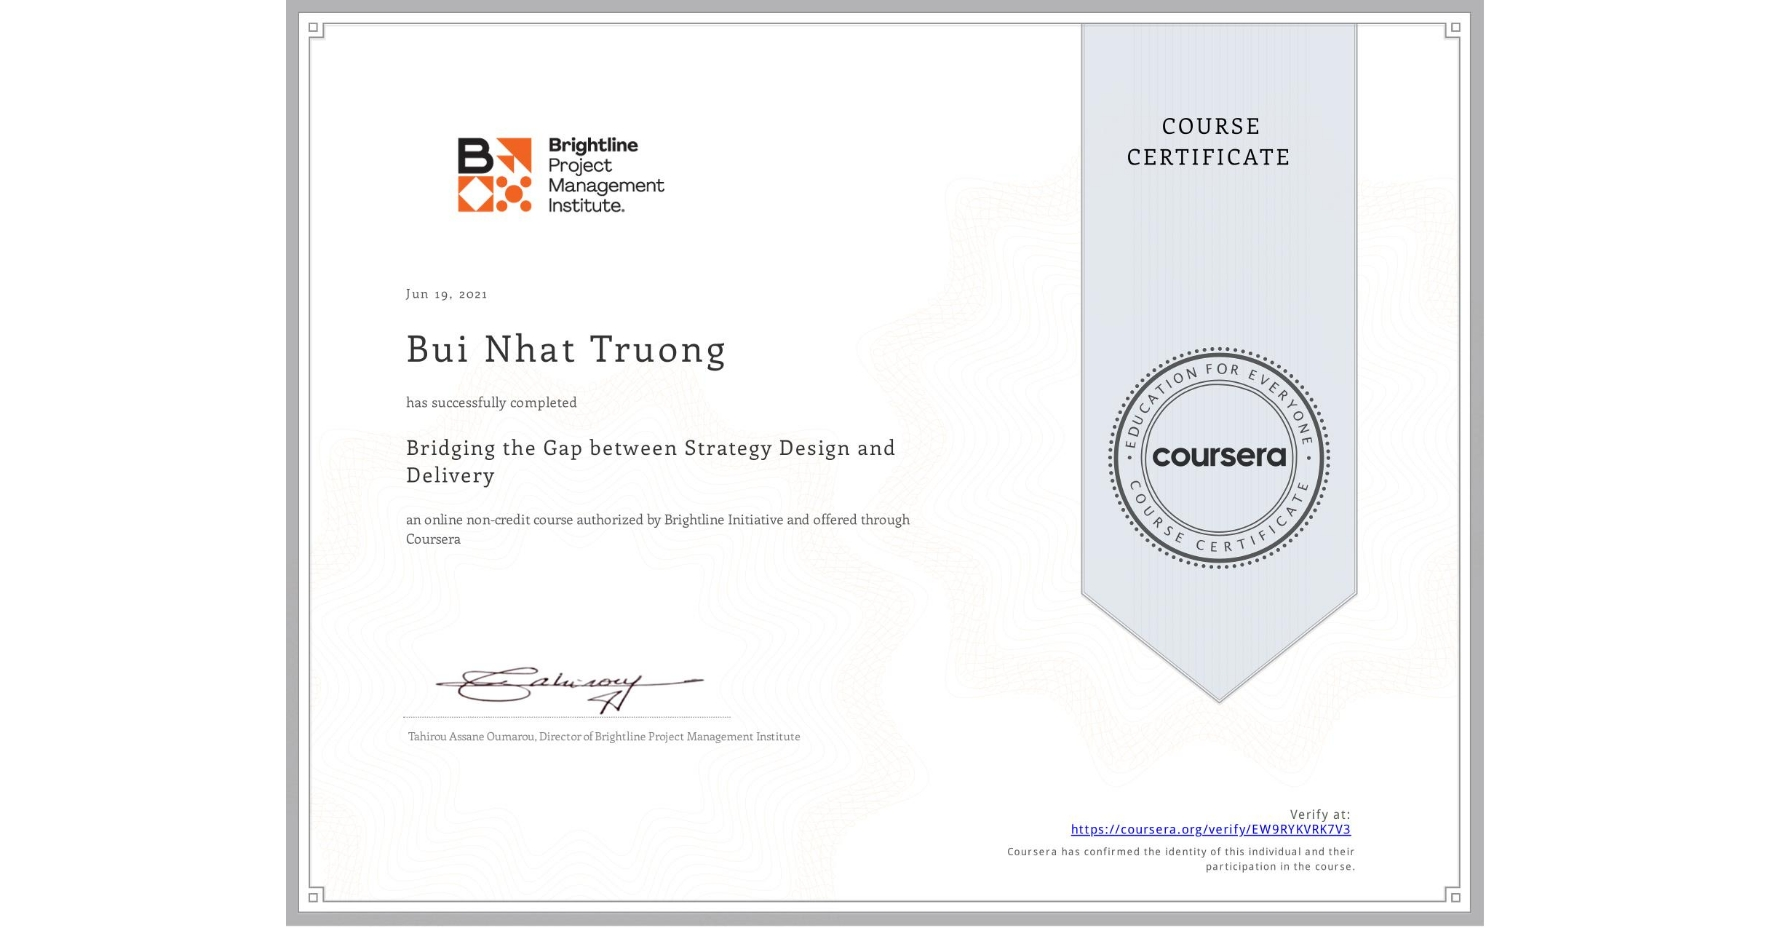 View certificate for Bui Nhat Truong, Bridging the Gap between Strategy Design and Delivery, an online non-credit course authorized by Brightline Initiative and offered through Coursera